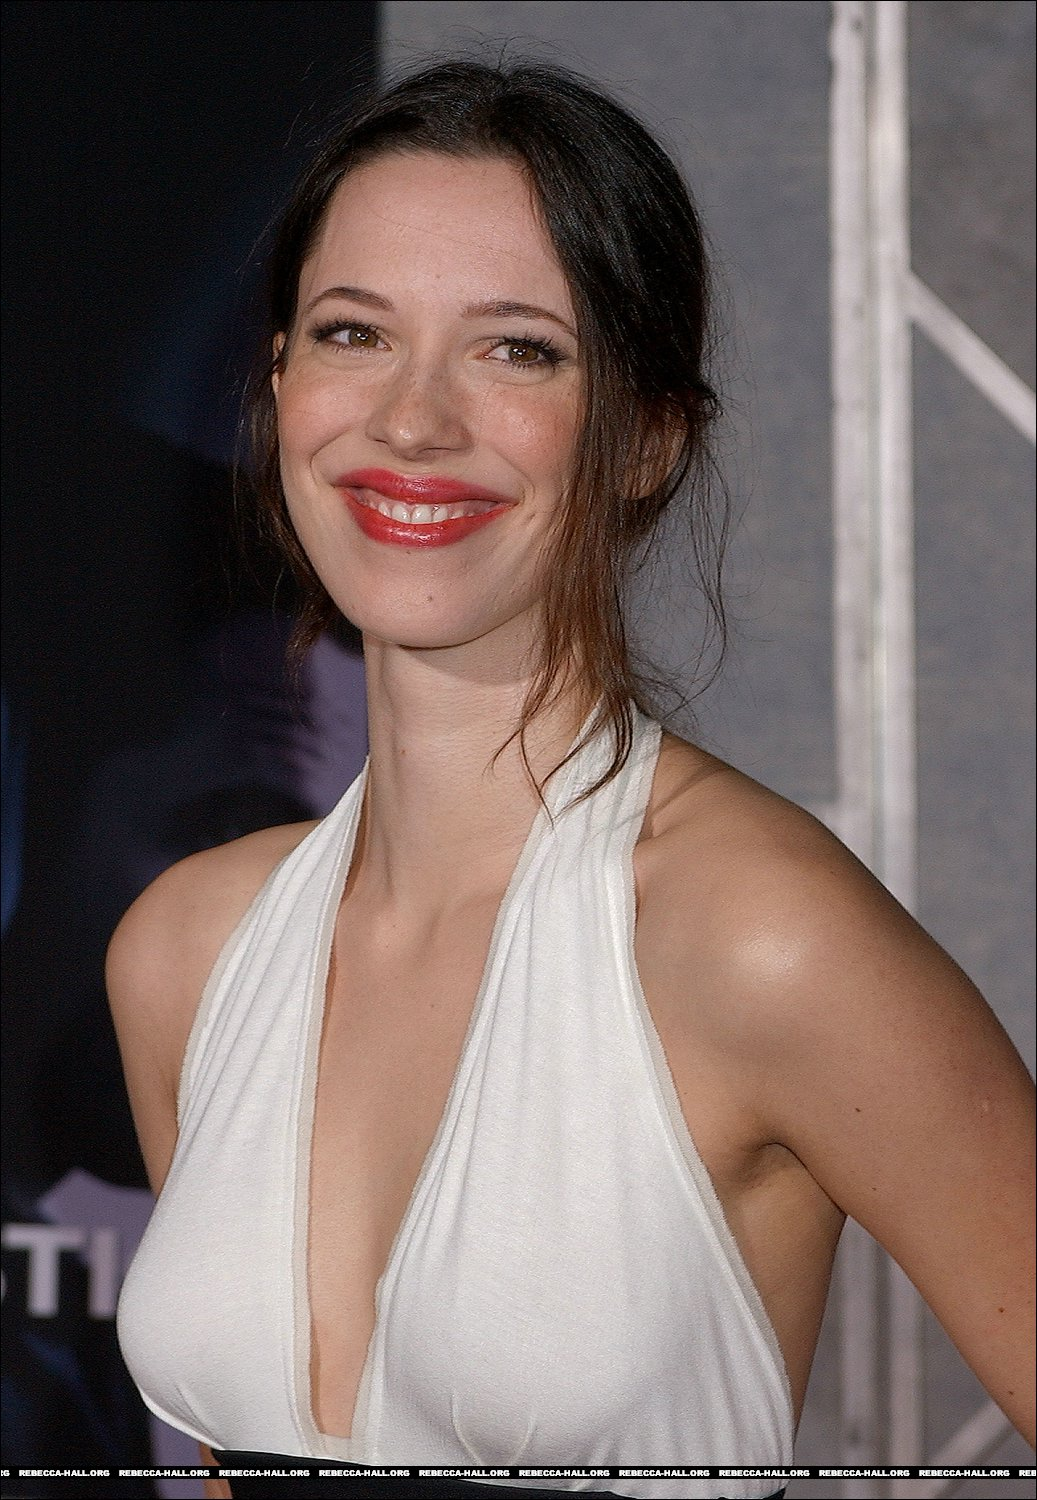 Would fuck rebecca hall naked one